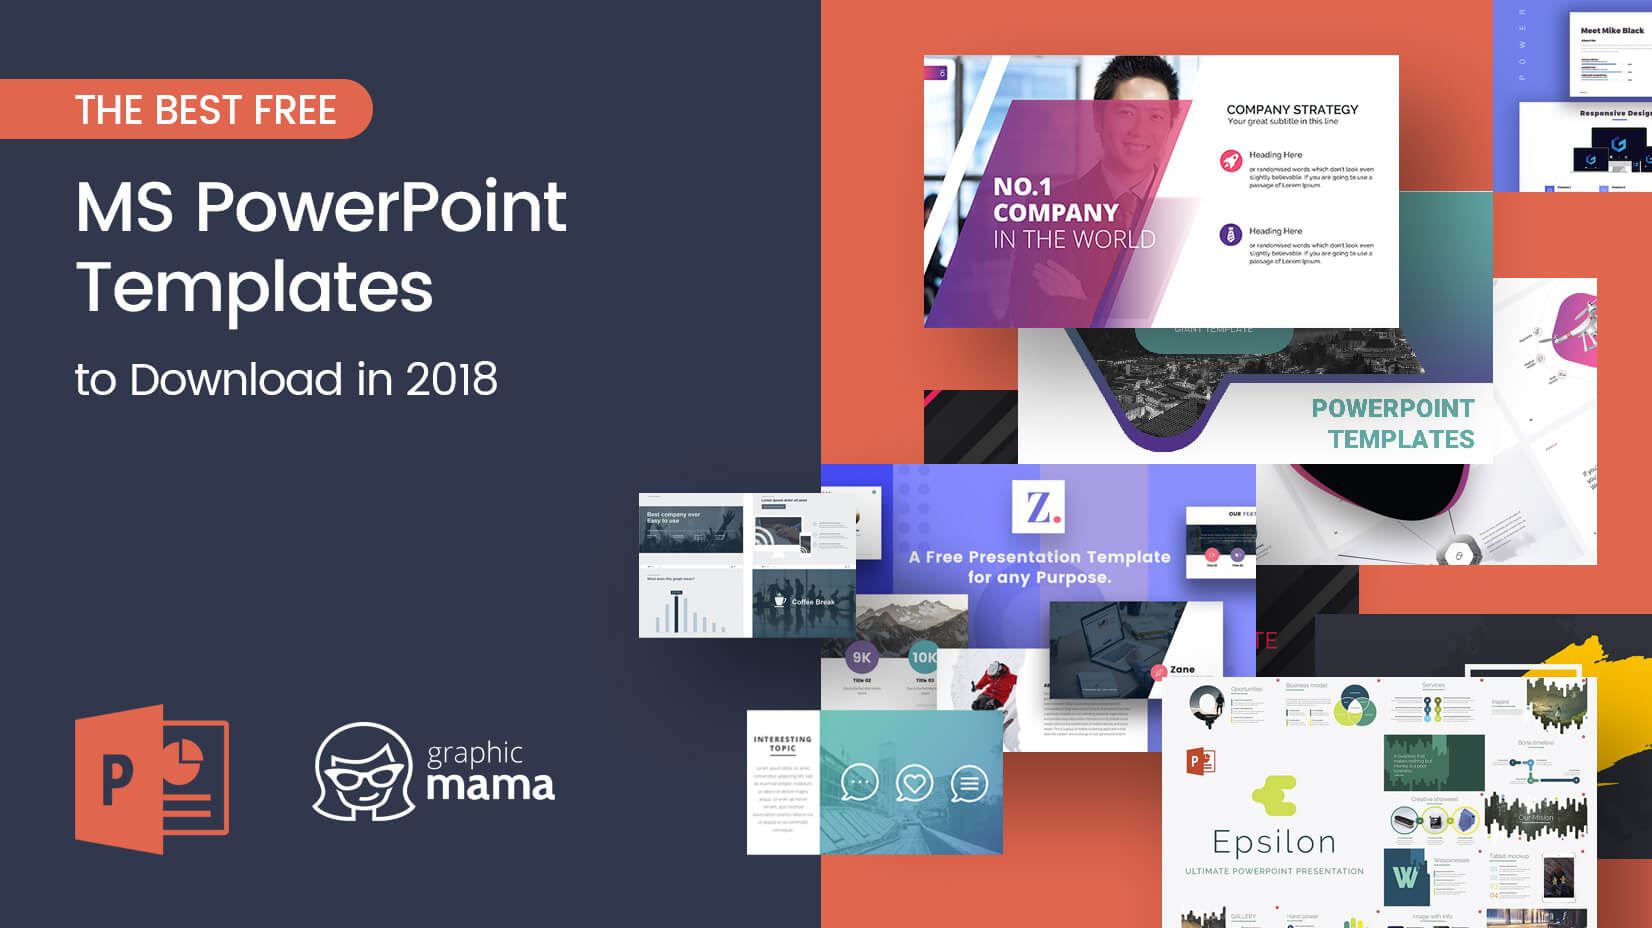 The best free powerpoint templates to download in 2018 graphicmama the best free powerpoint templates to download in 2018 accmission Choice Image